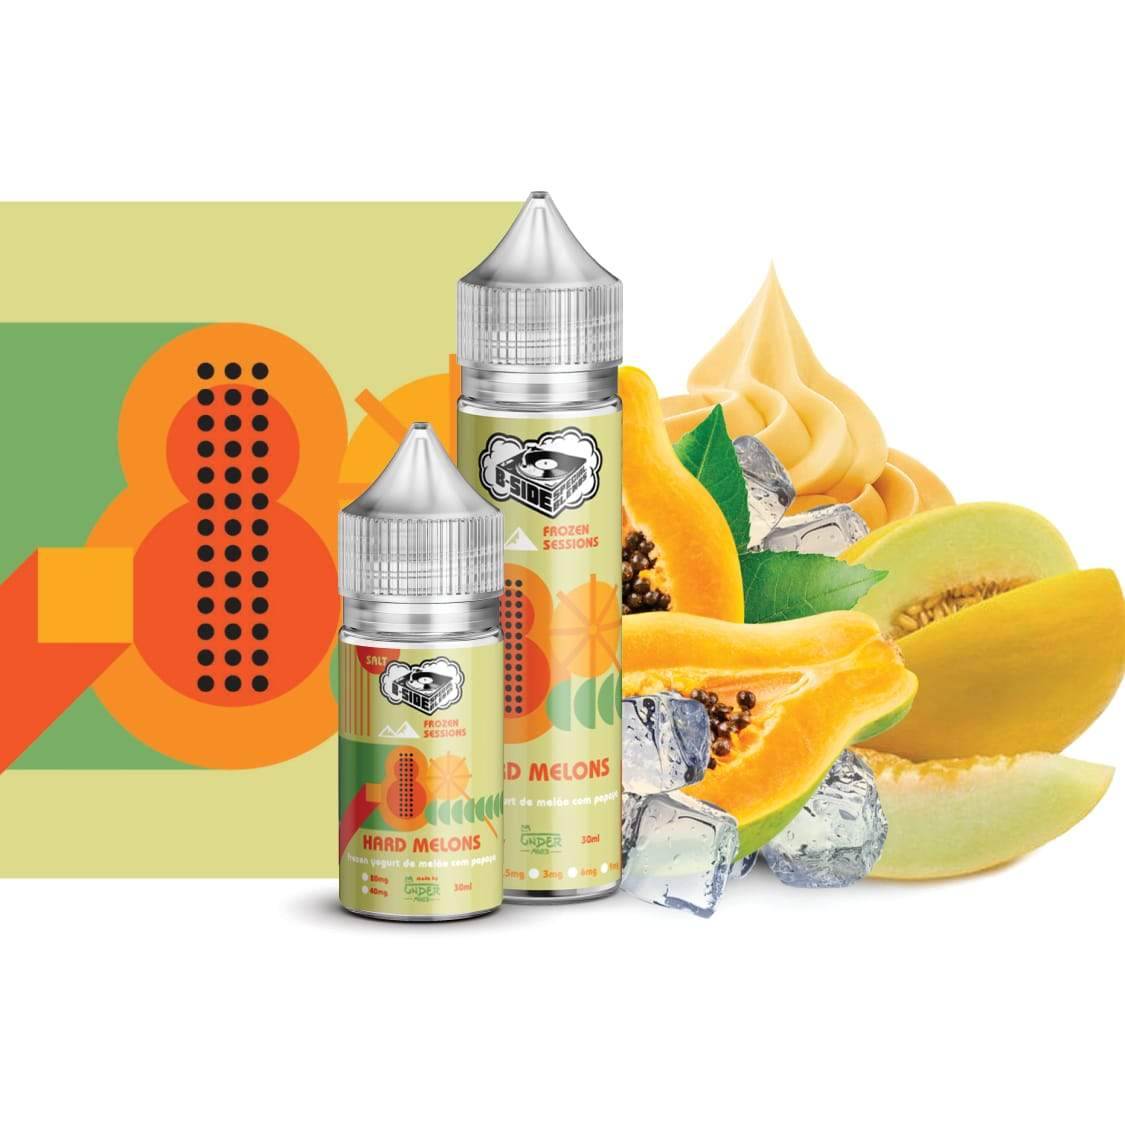 Hard Melons 30ML - B-SIDE Special Blends